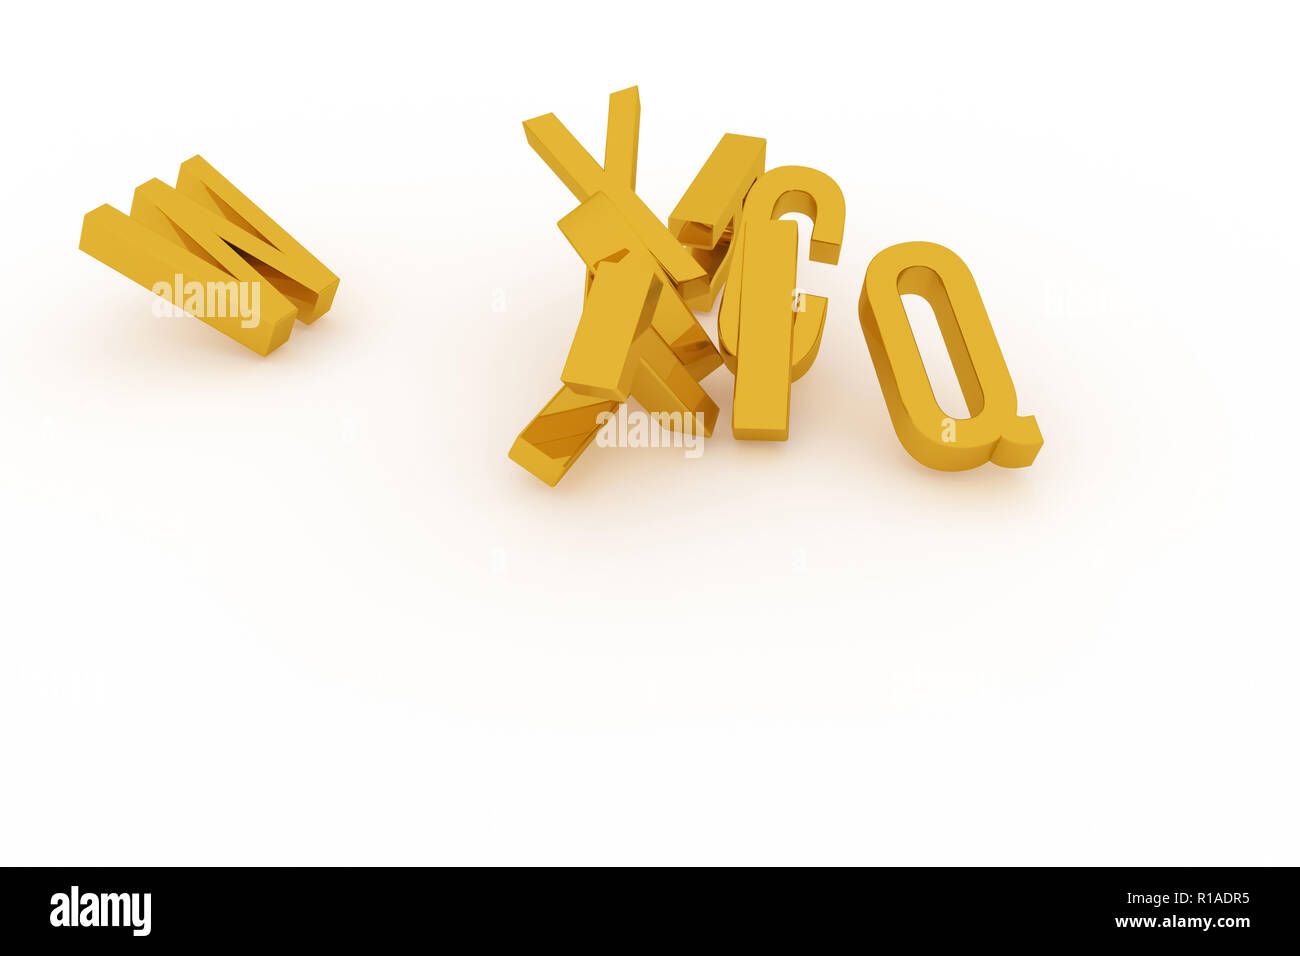 Background abstract CGI typography, good for design, alphabetic character for letter of ABC. Gold color 3D rendering. Illustration, education, mess &  - Stock Image